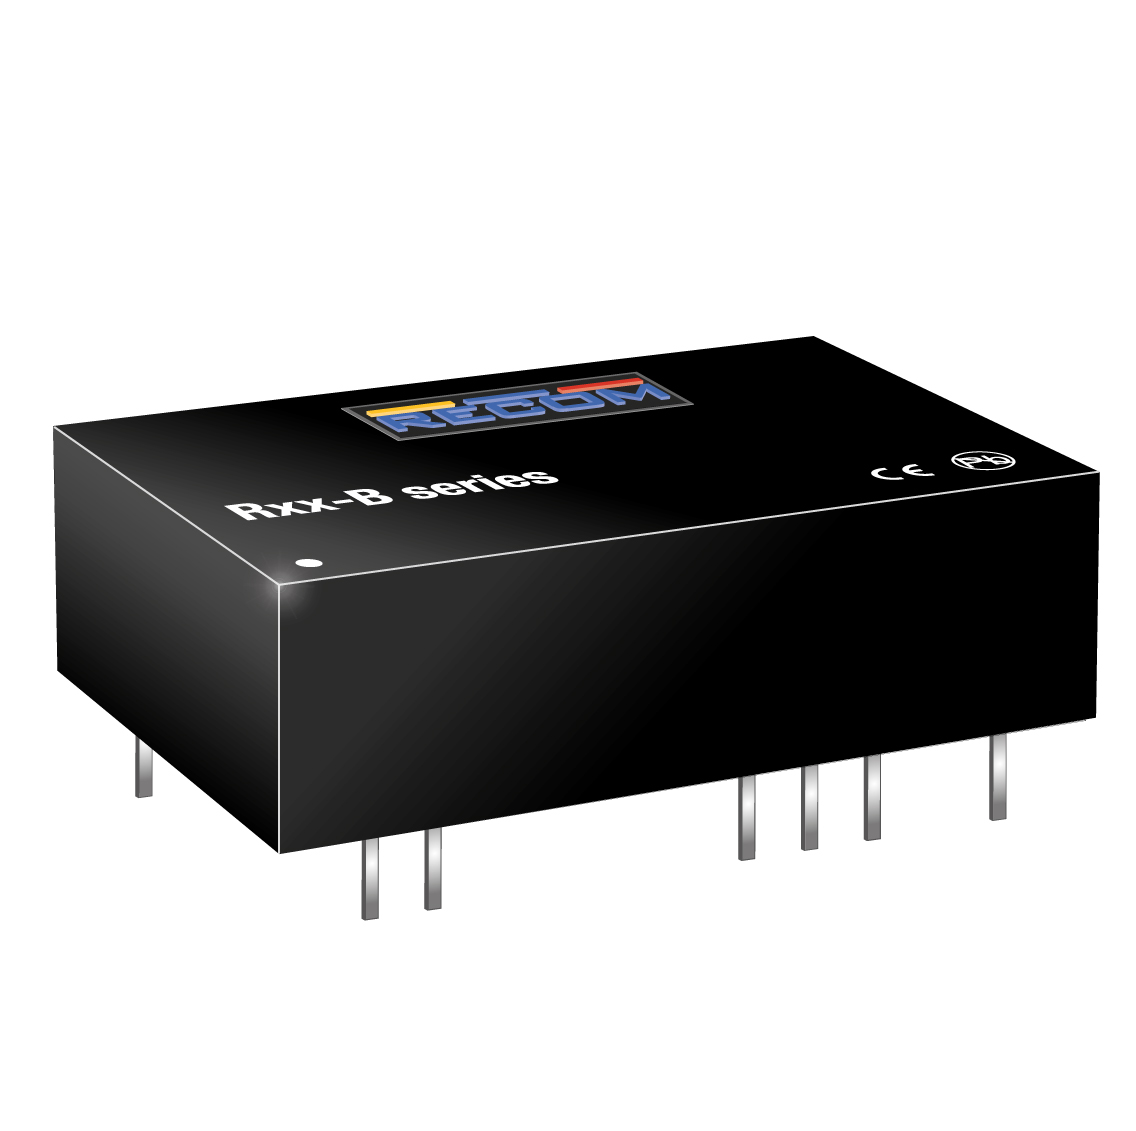 Semiconductors Power Management DC - DC Converters R12-100B by Recom Power